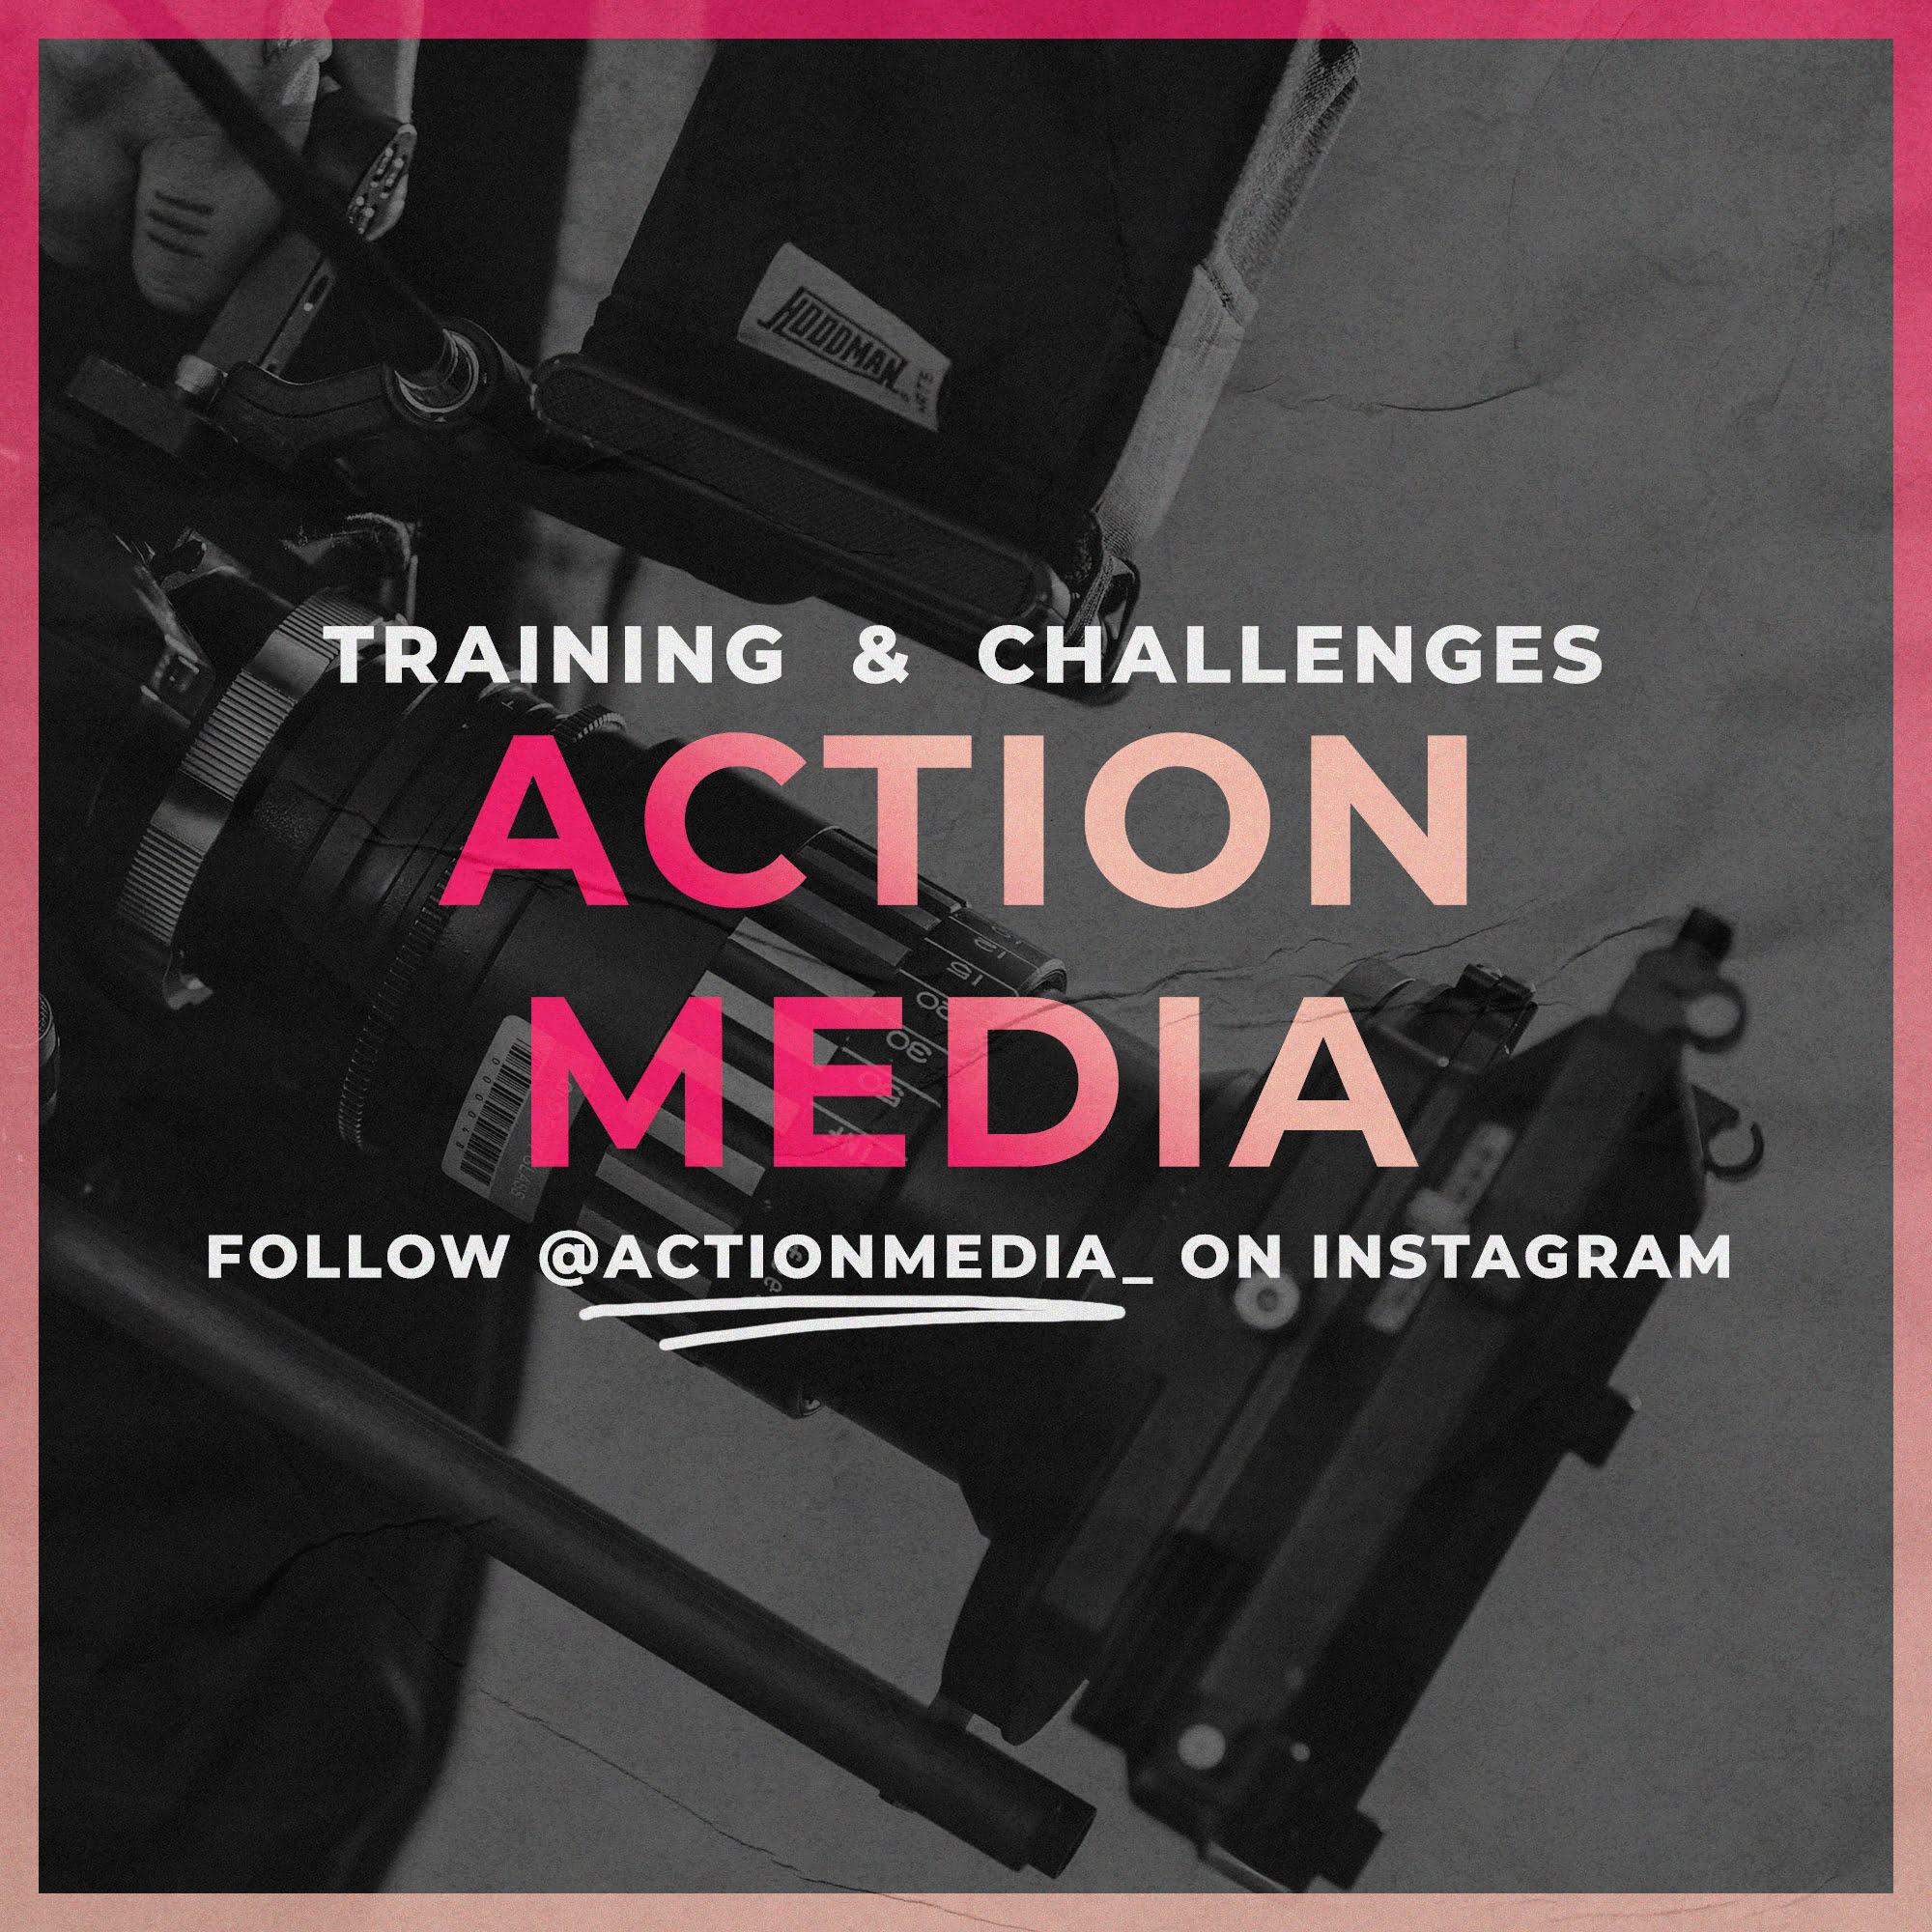 Action Media Training